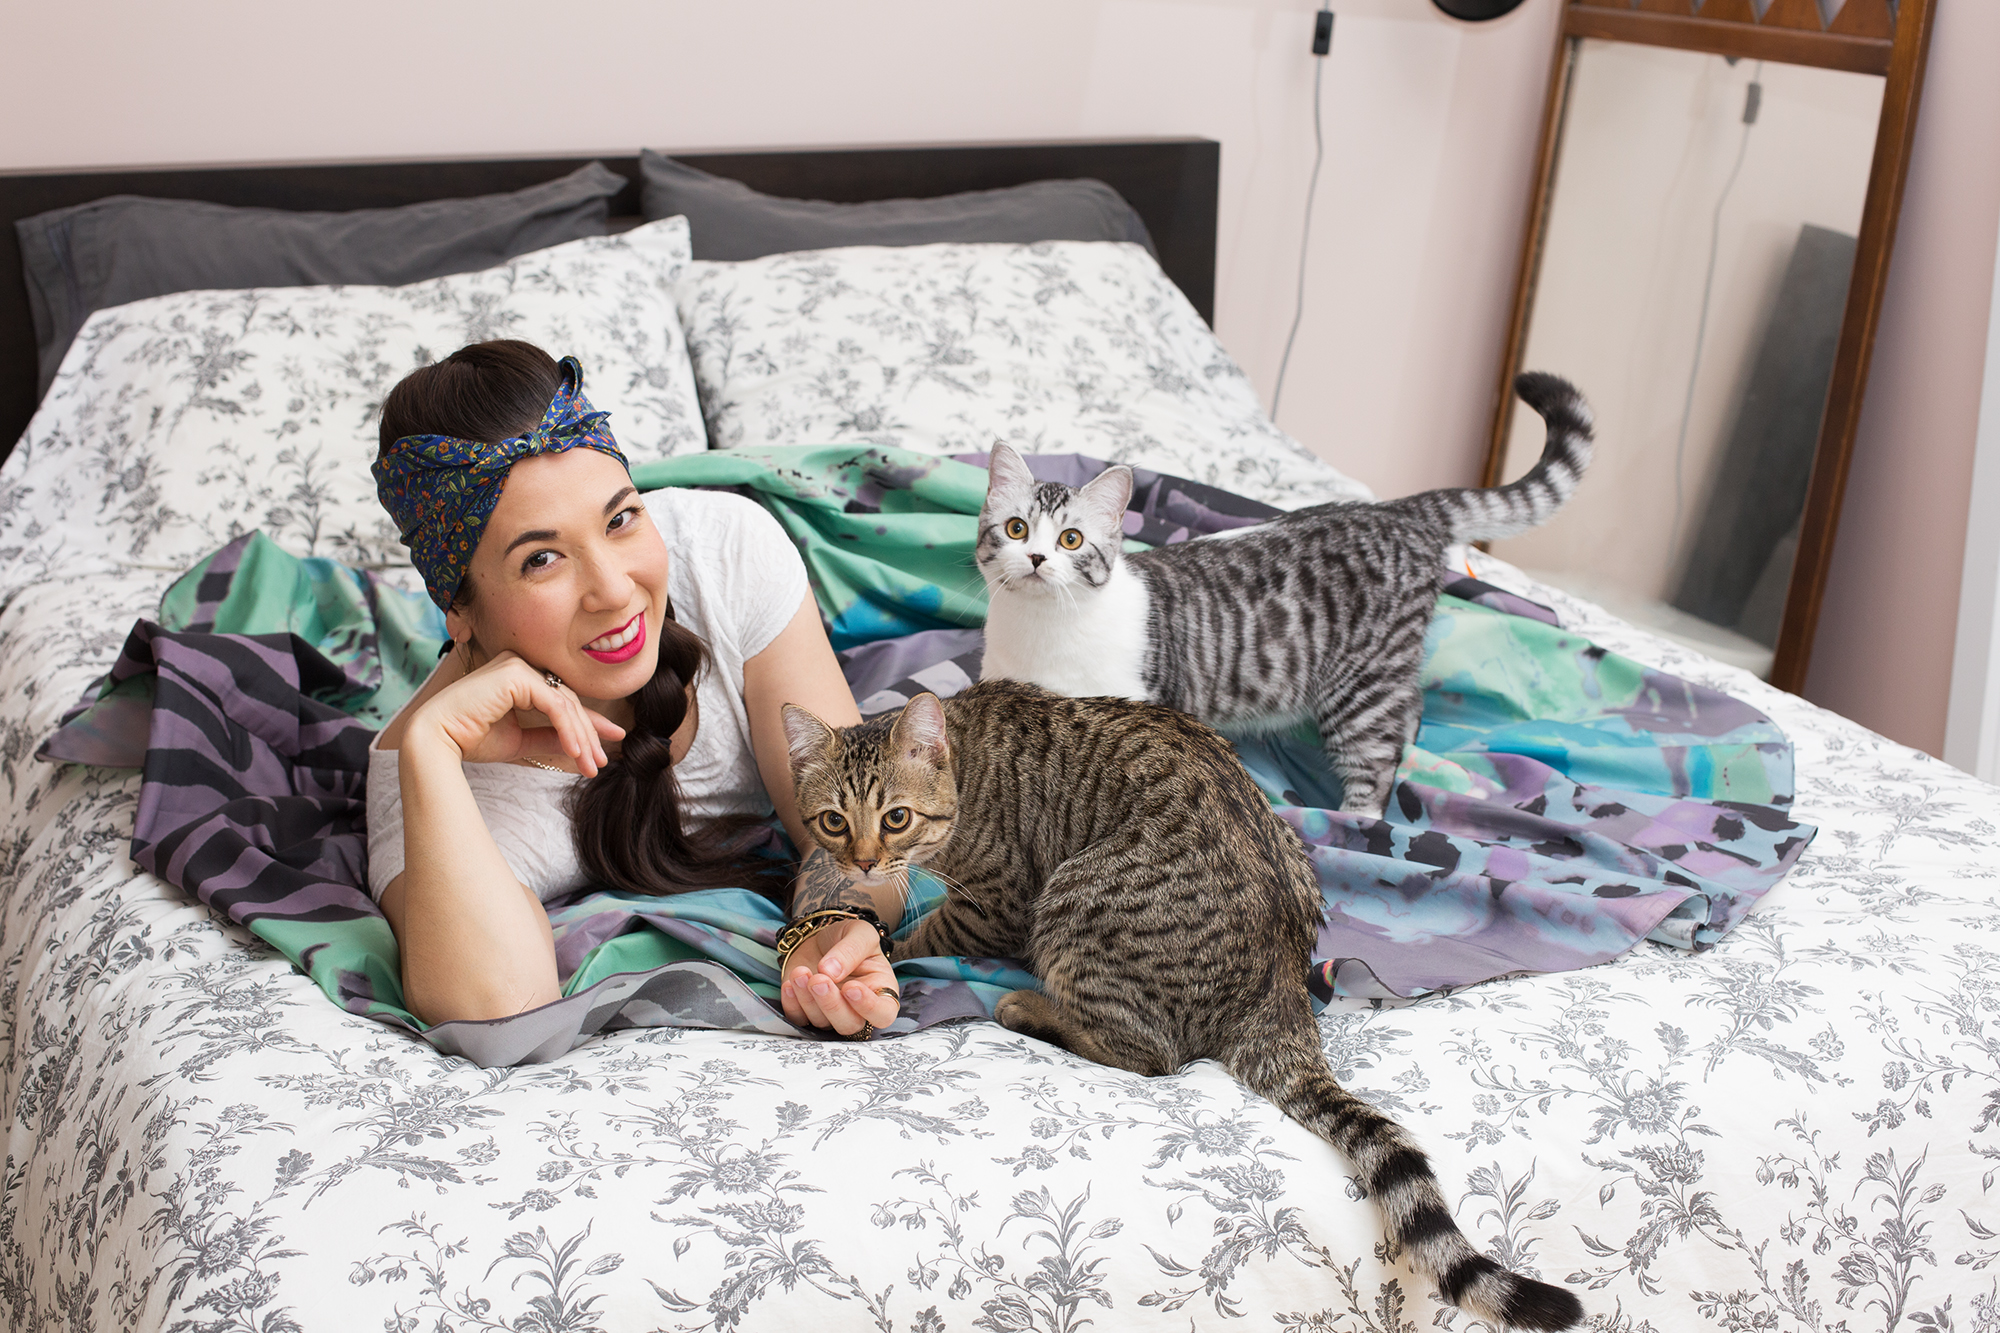 Purrfect Portraiture: <em>Girls and Their Cats</em> by Photographer BriAnne Wills